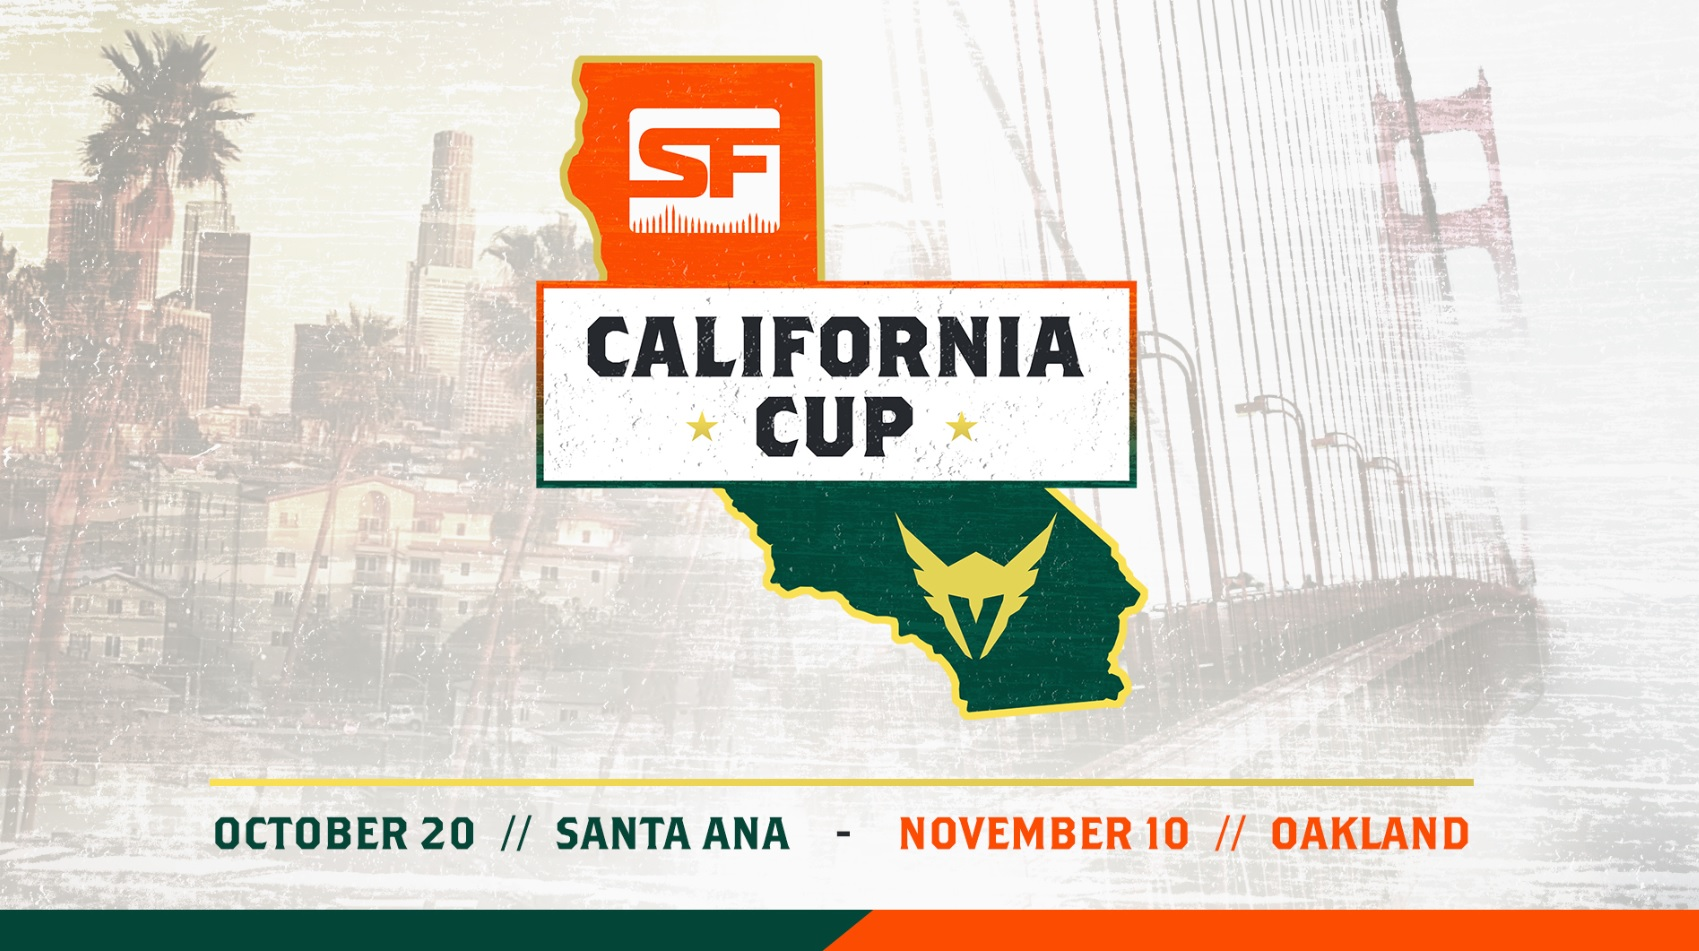 venturebeat.com - Dean Takahashi - California Cup will create Overwatch esports rivalry between Northern and Southern California